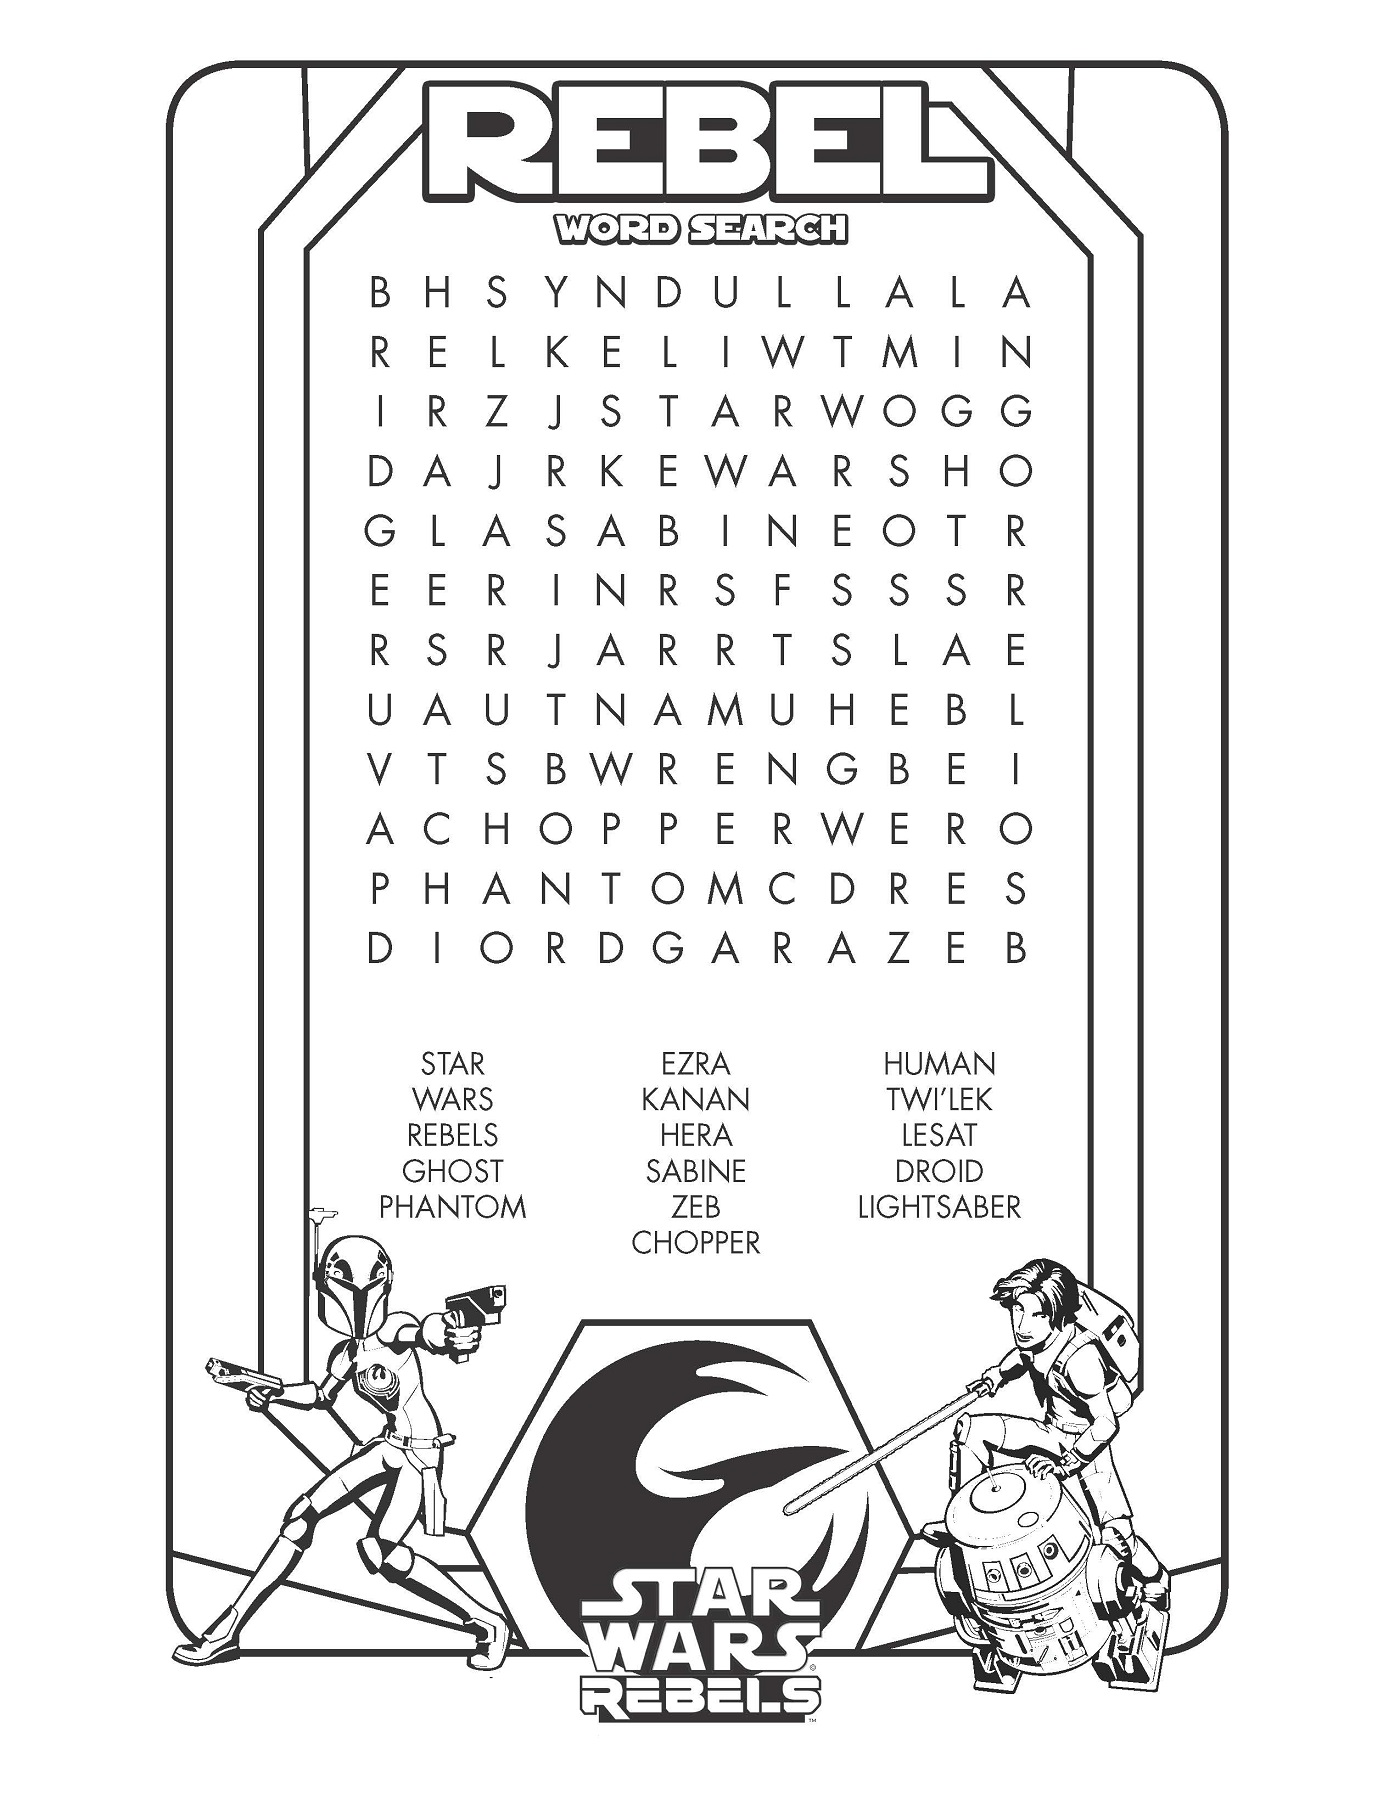 Star Wars Word Search High Quality